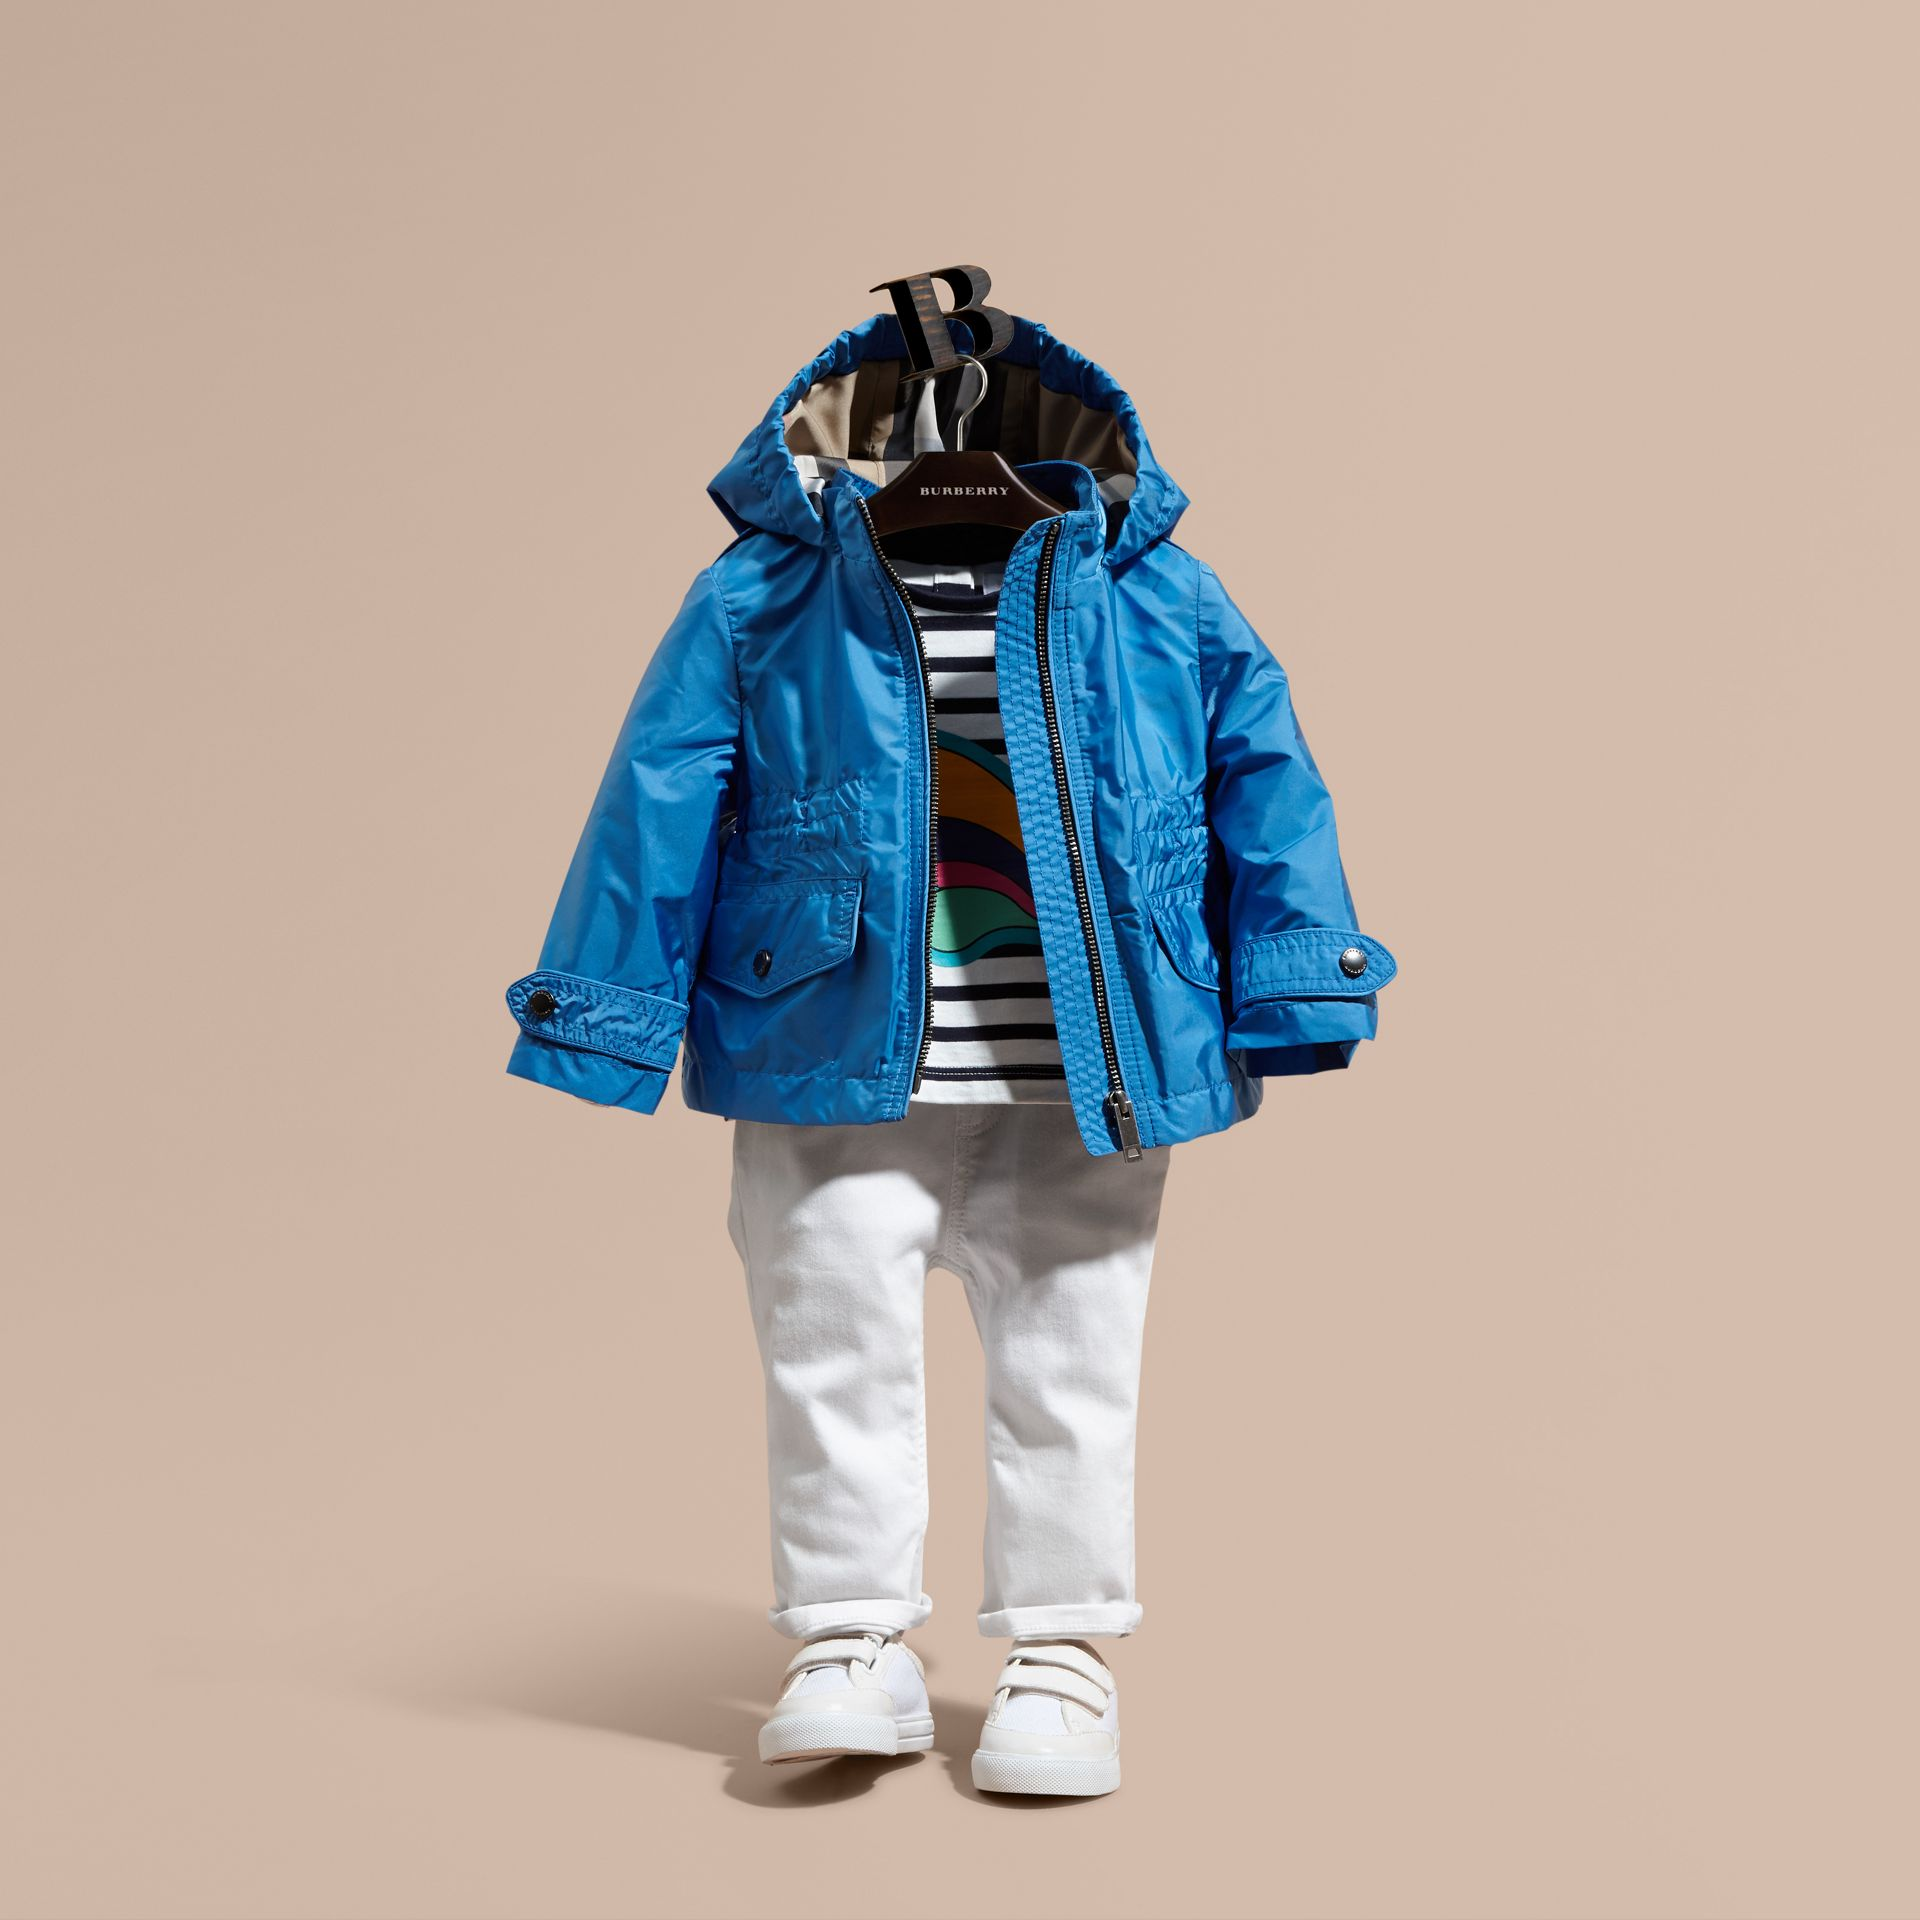 Hooded Packaway Technical Jacket in Hydrangea Blue - gallery image 1